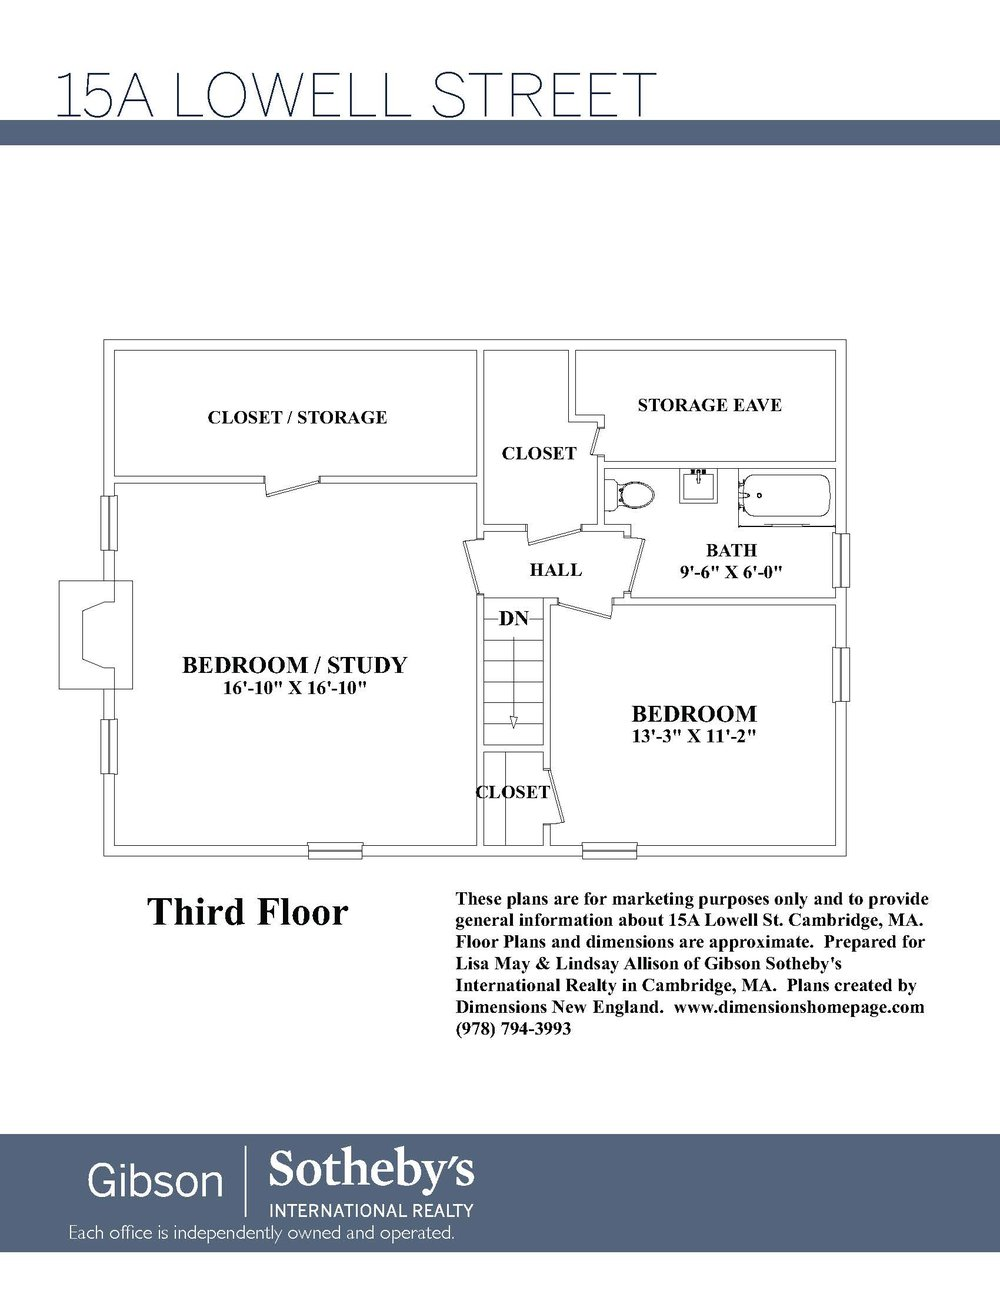 floorplan - all 4 pages_Page_3.jpg